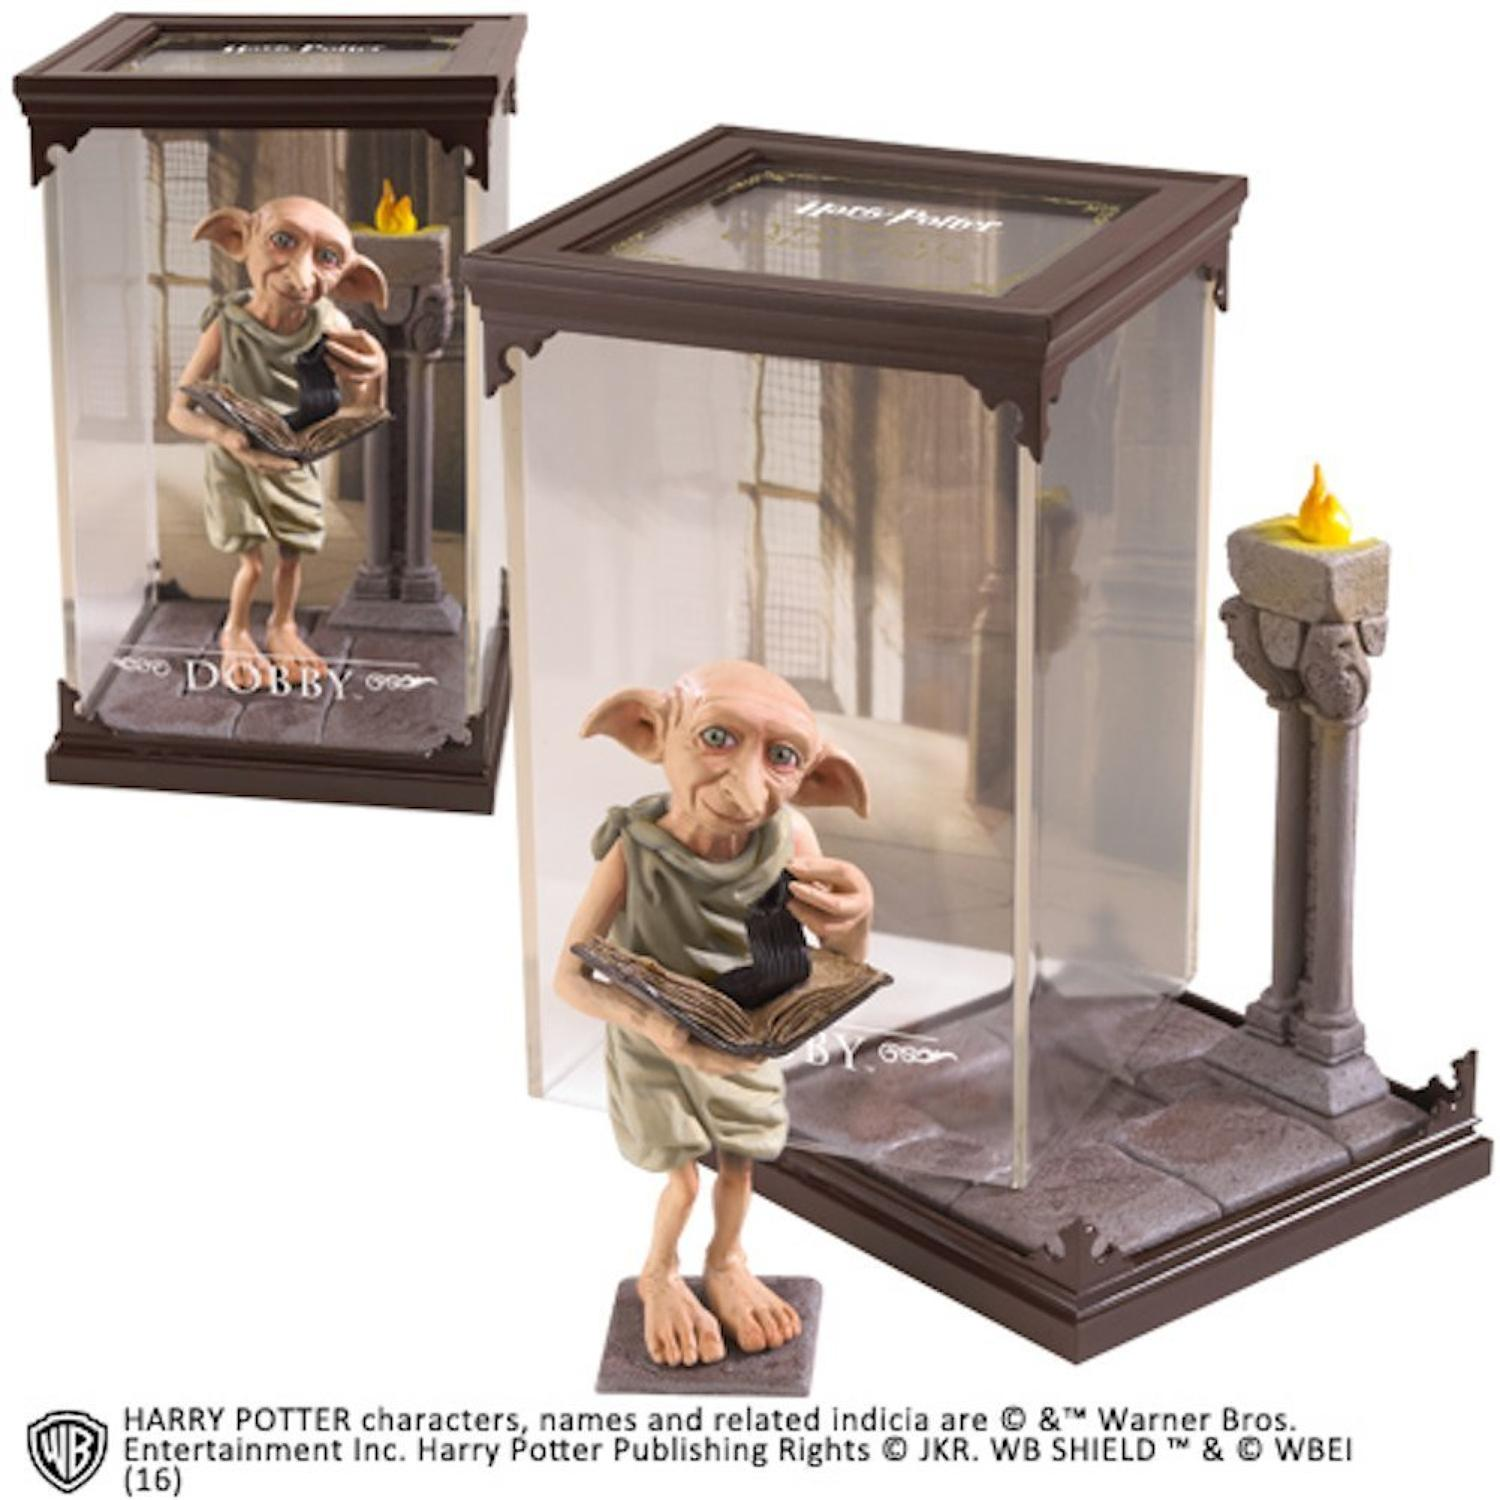 Harry Potter - Dobby the Elf Magical Creature